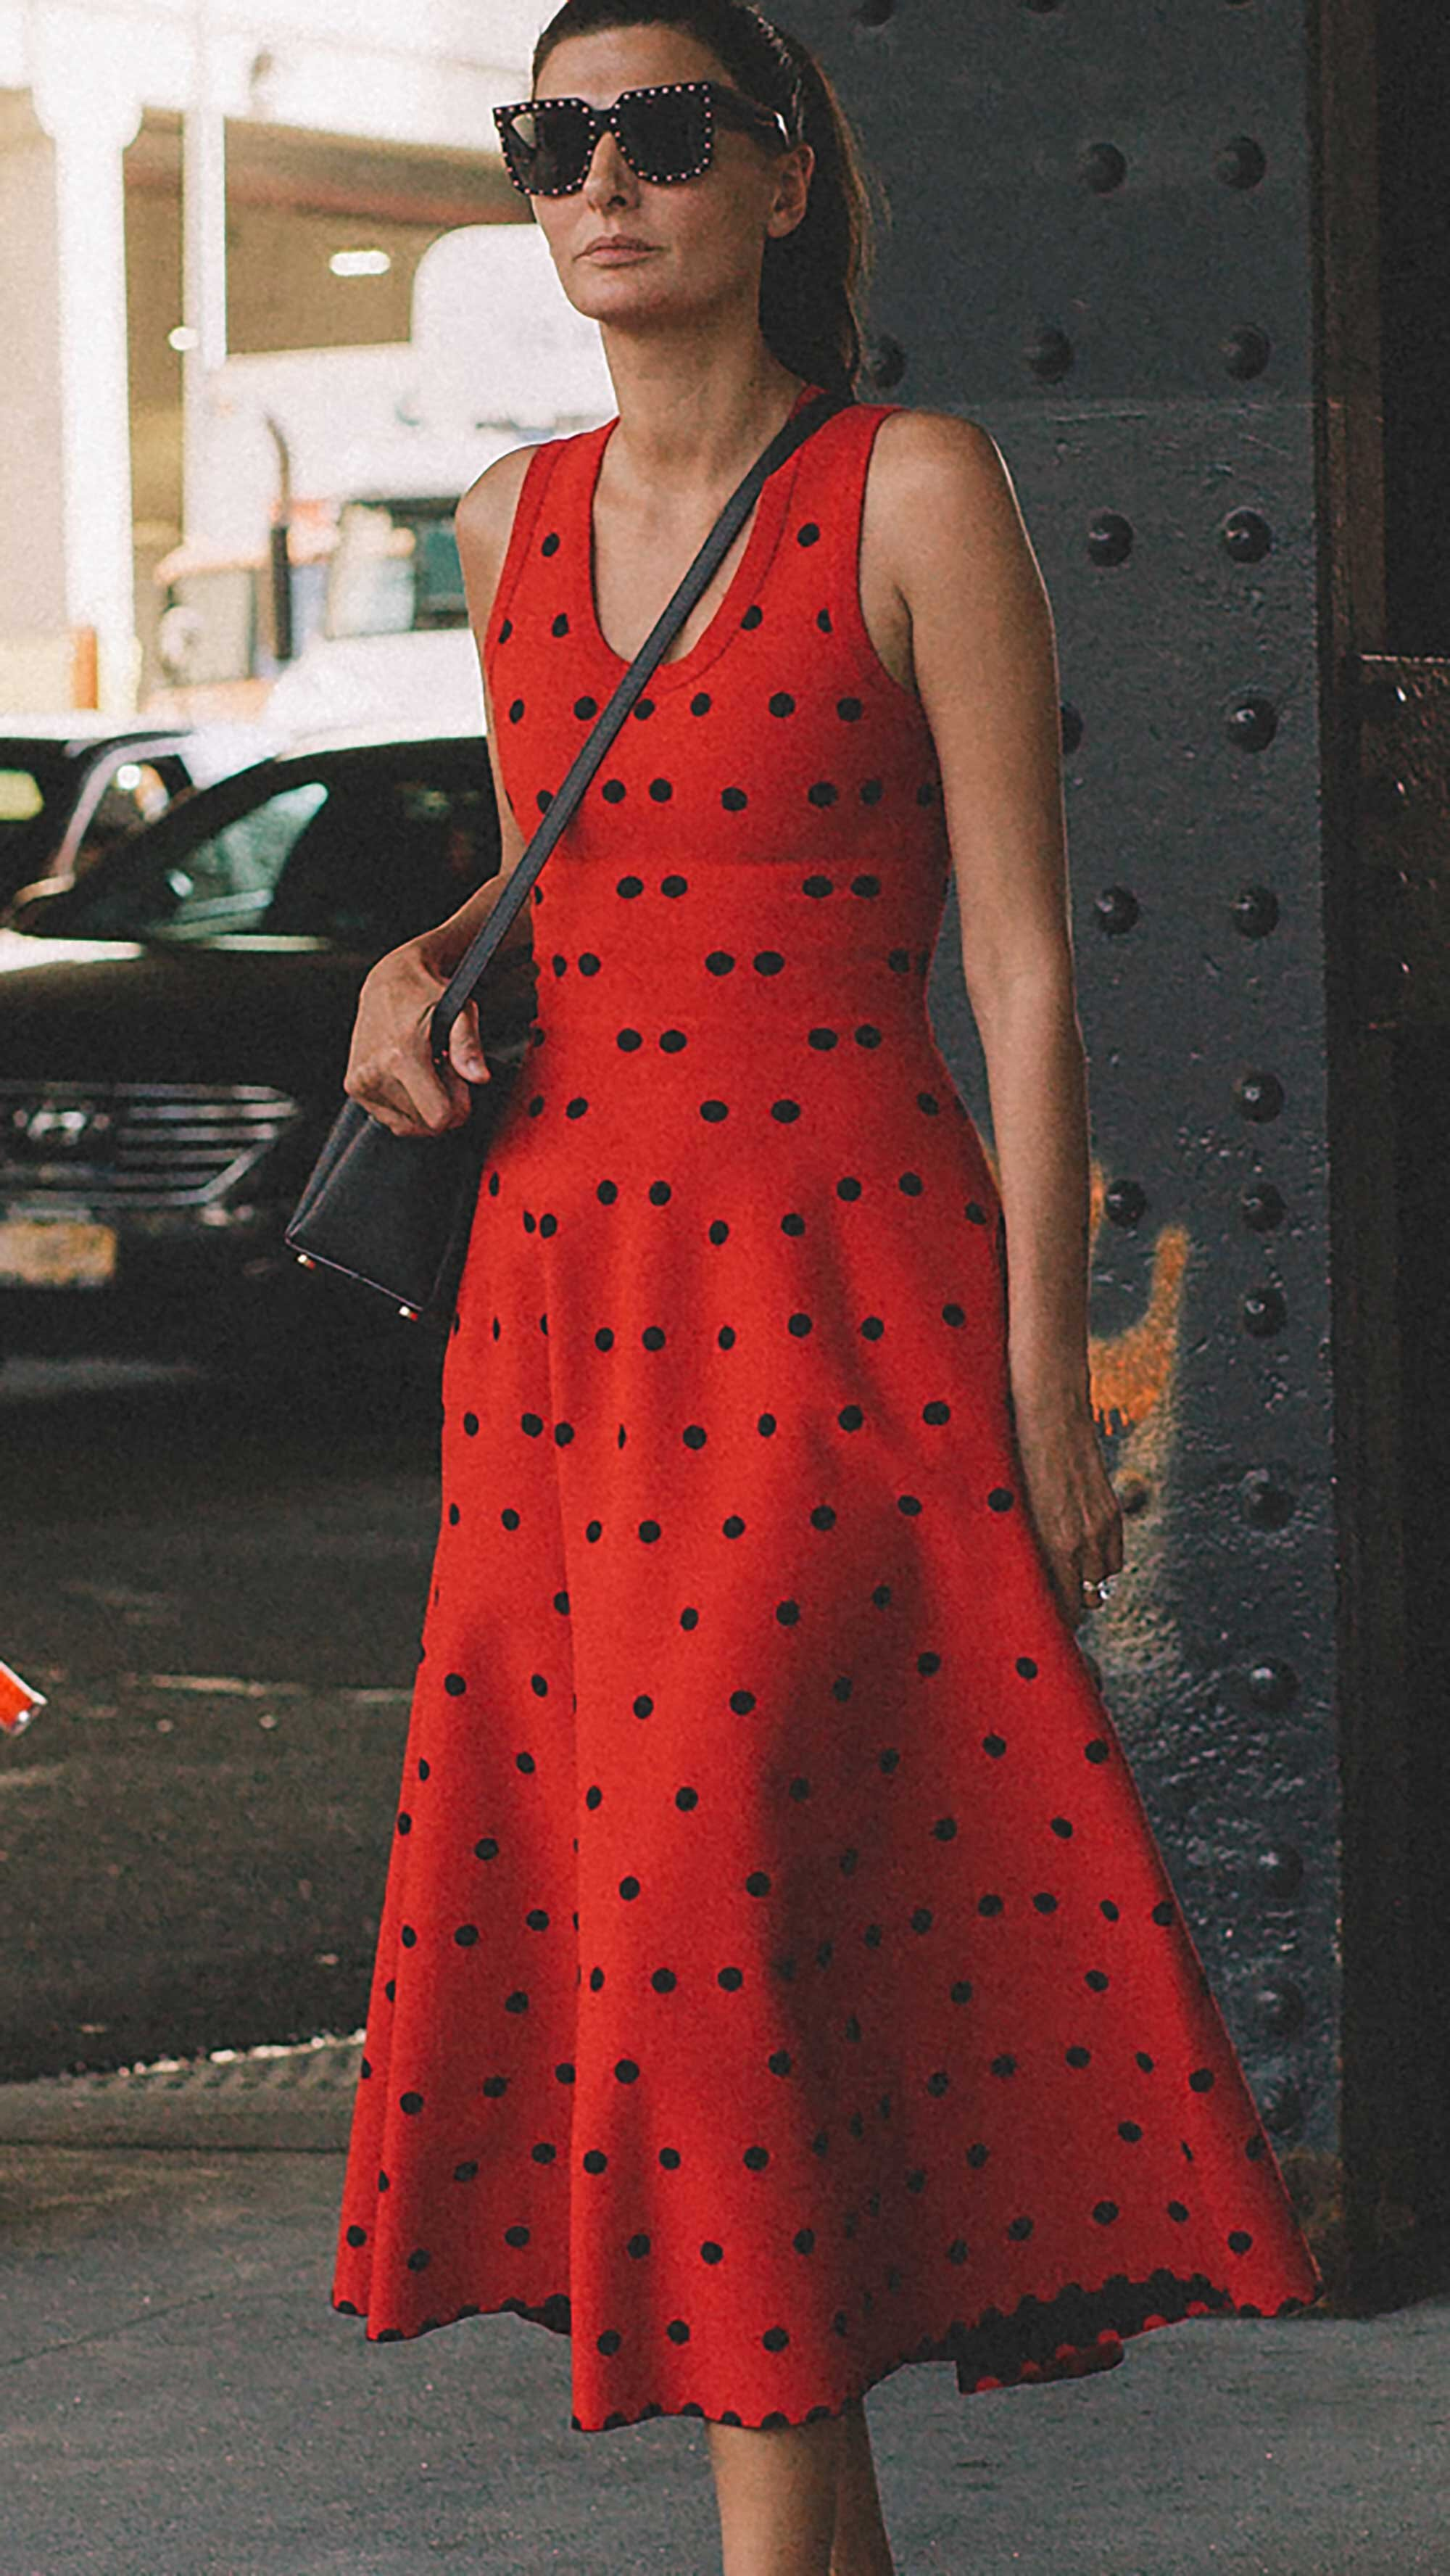 Best outfits of New York Fashion Week street style -64.jpg